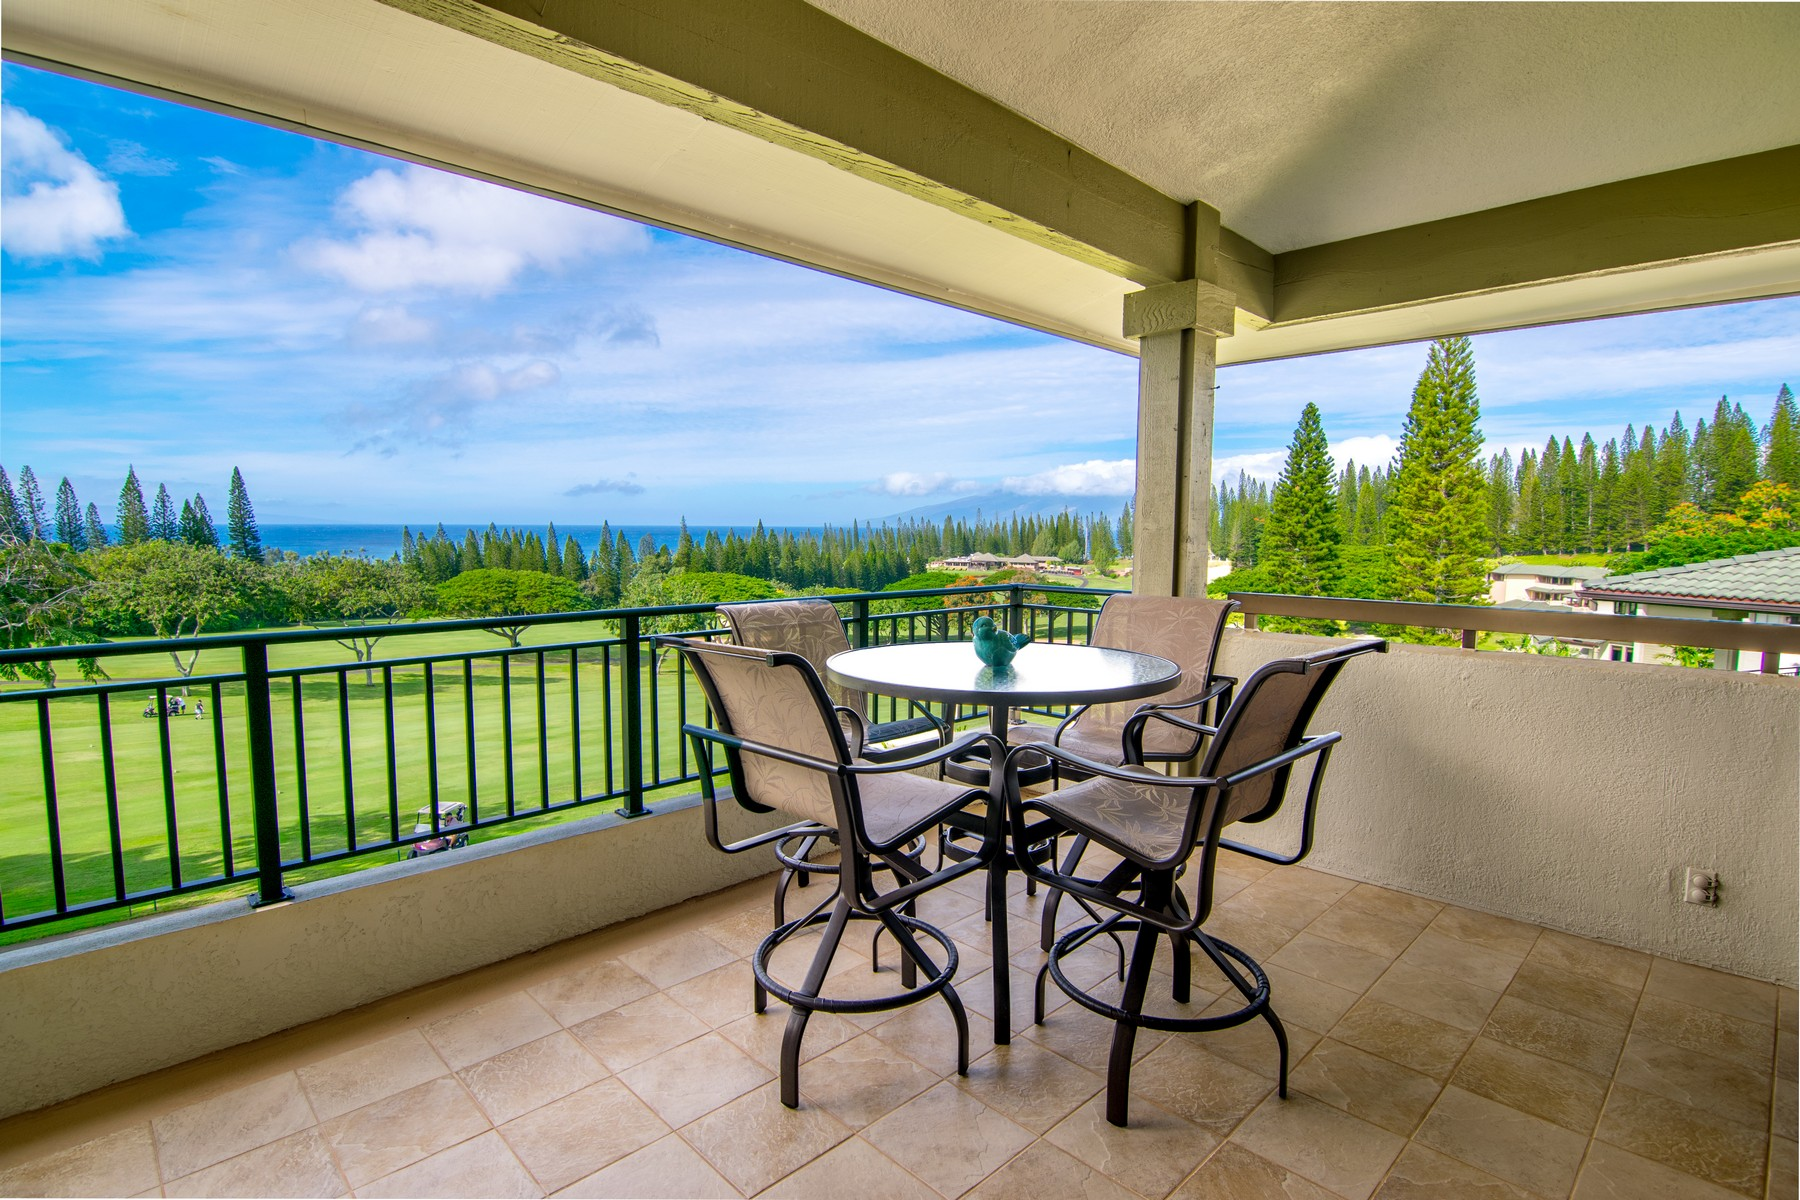 Condominium for Sale at Par 5 Living On The Green In Kapalua 500 Kapalua Drive, Golf Villas 18V4 Kapalua, Hawaii, 96761 United States